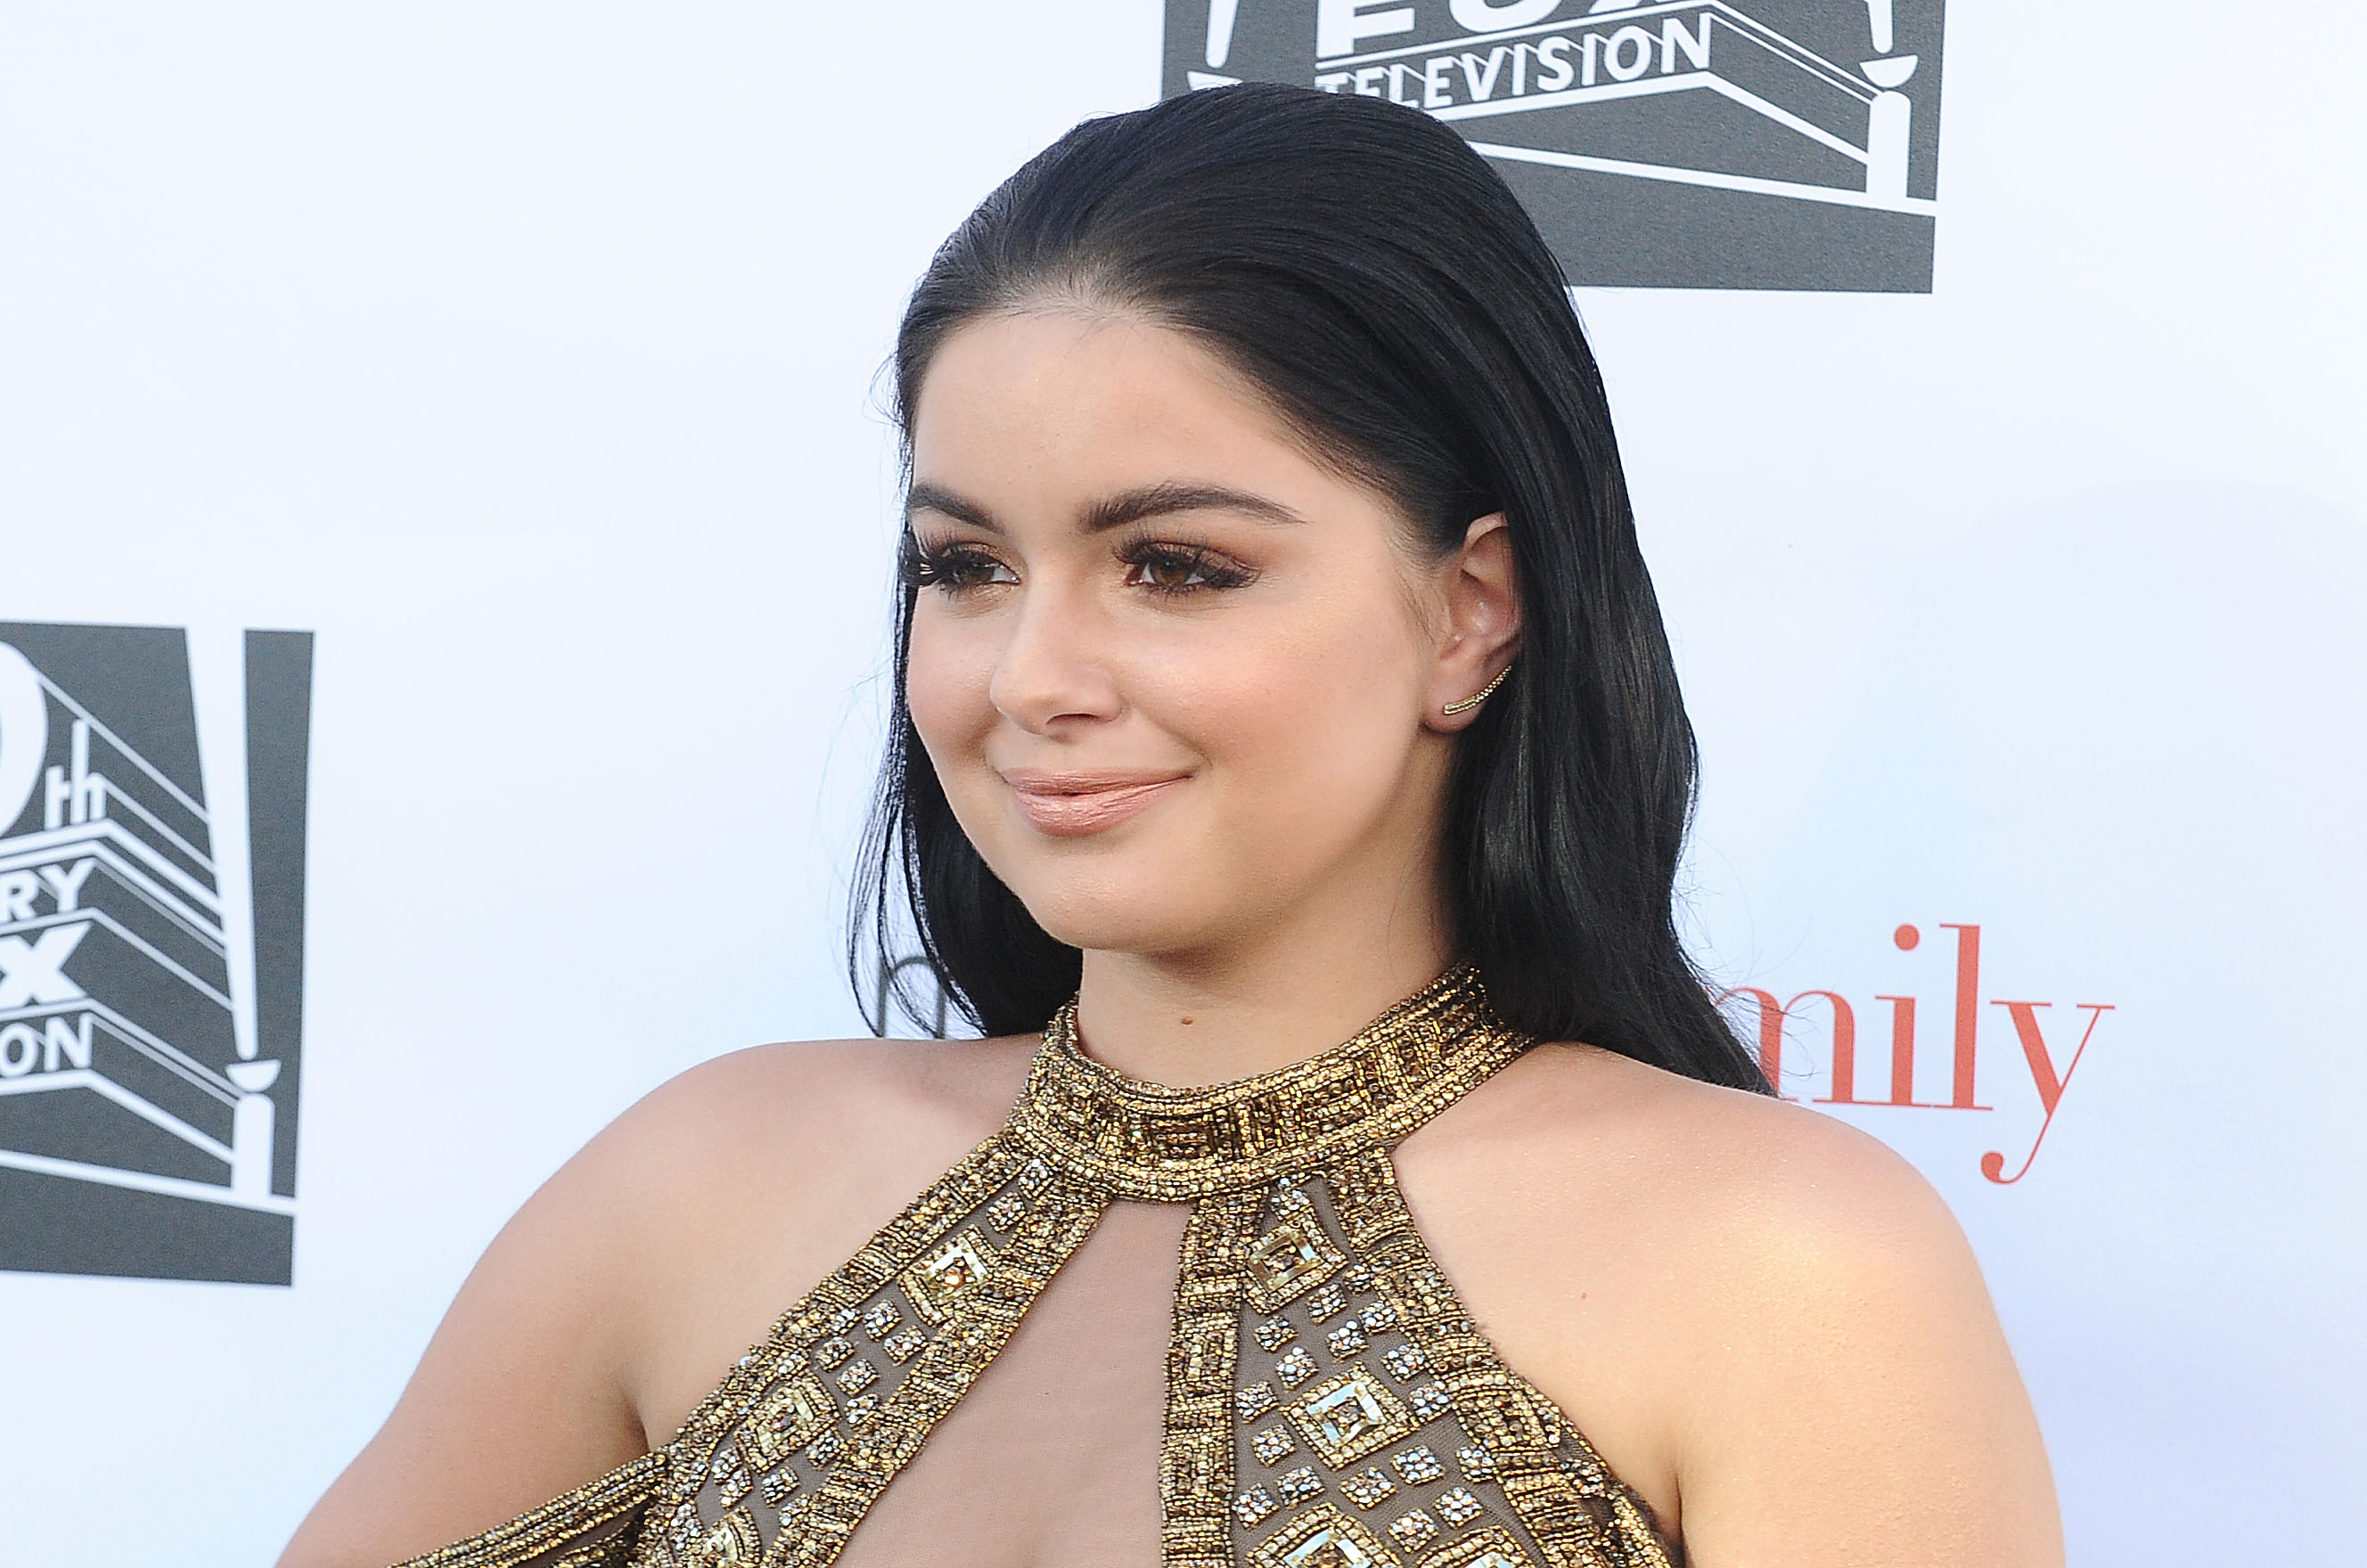 Ariel Winter went on an epic rant after being body shamed for wearing short shorts